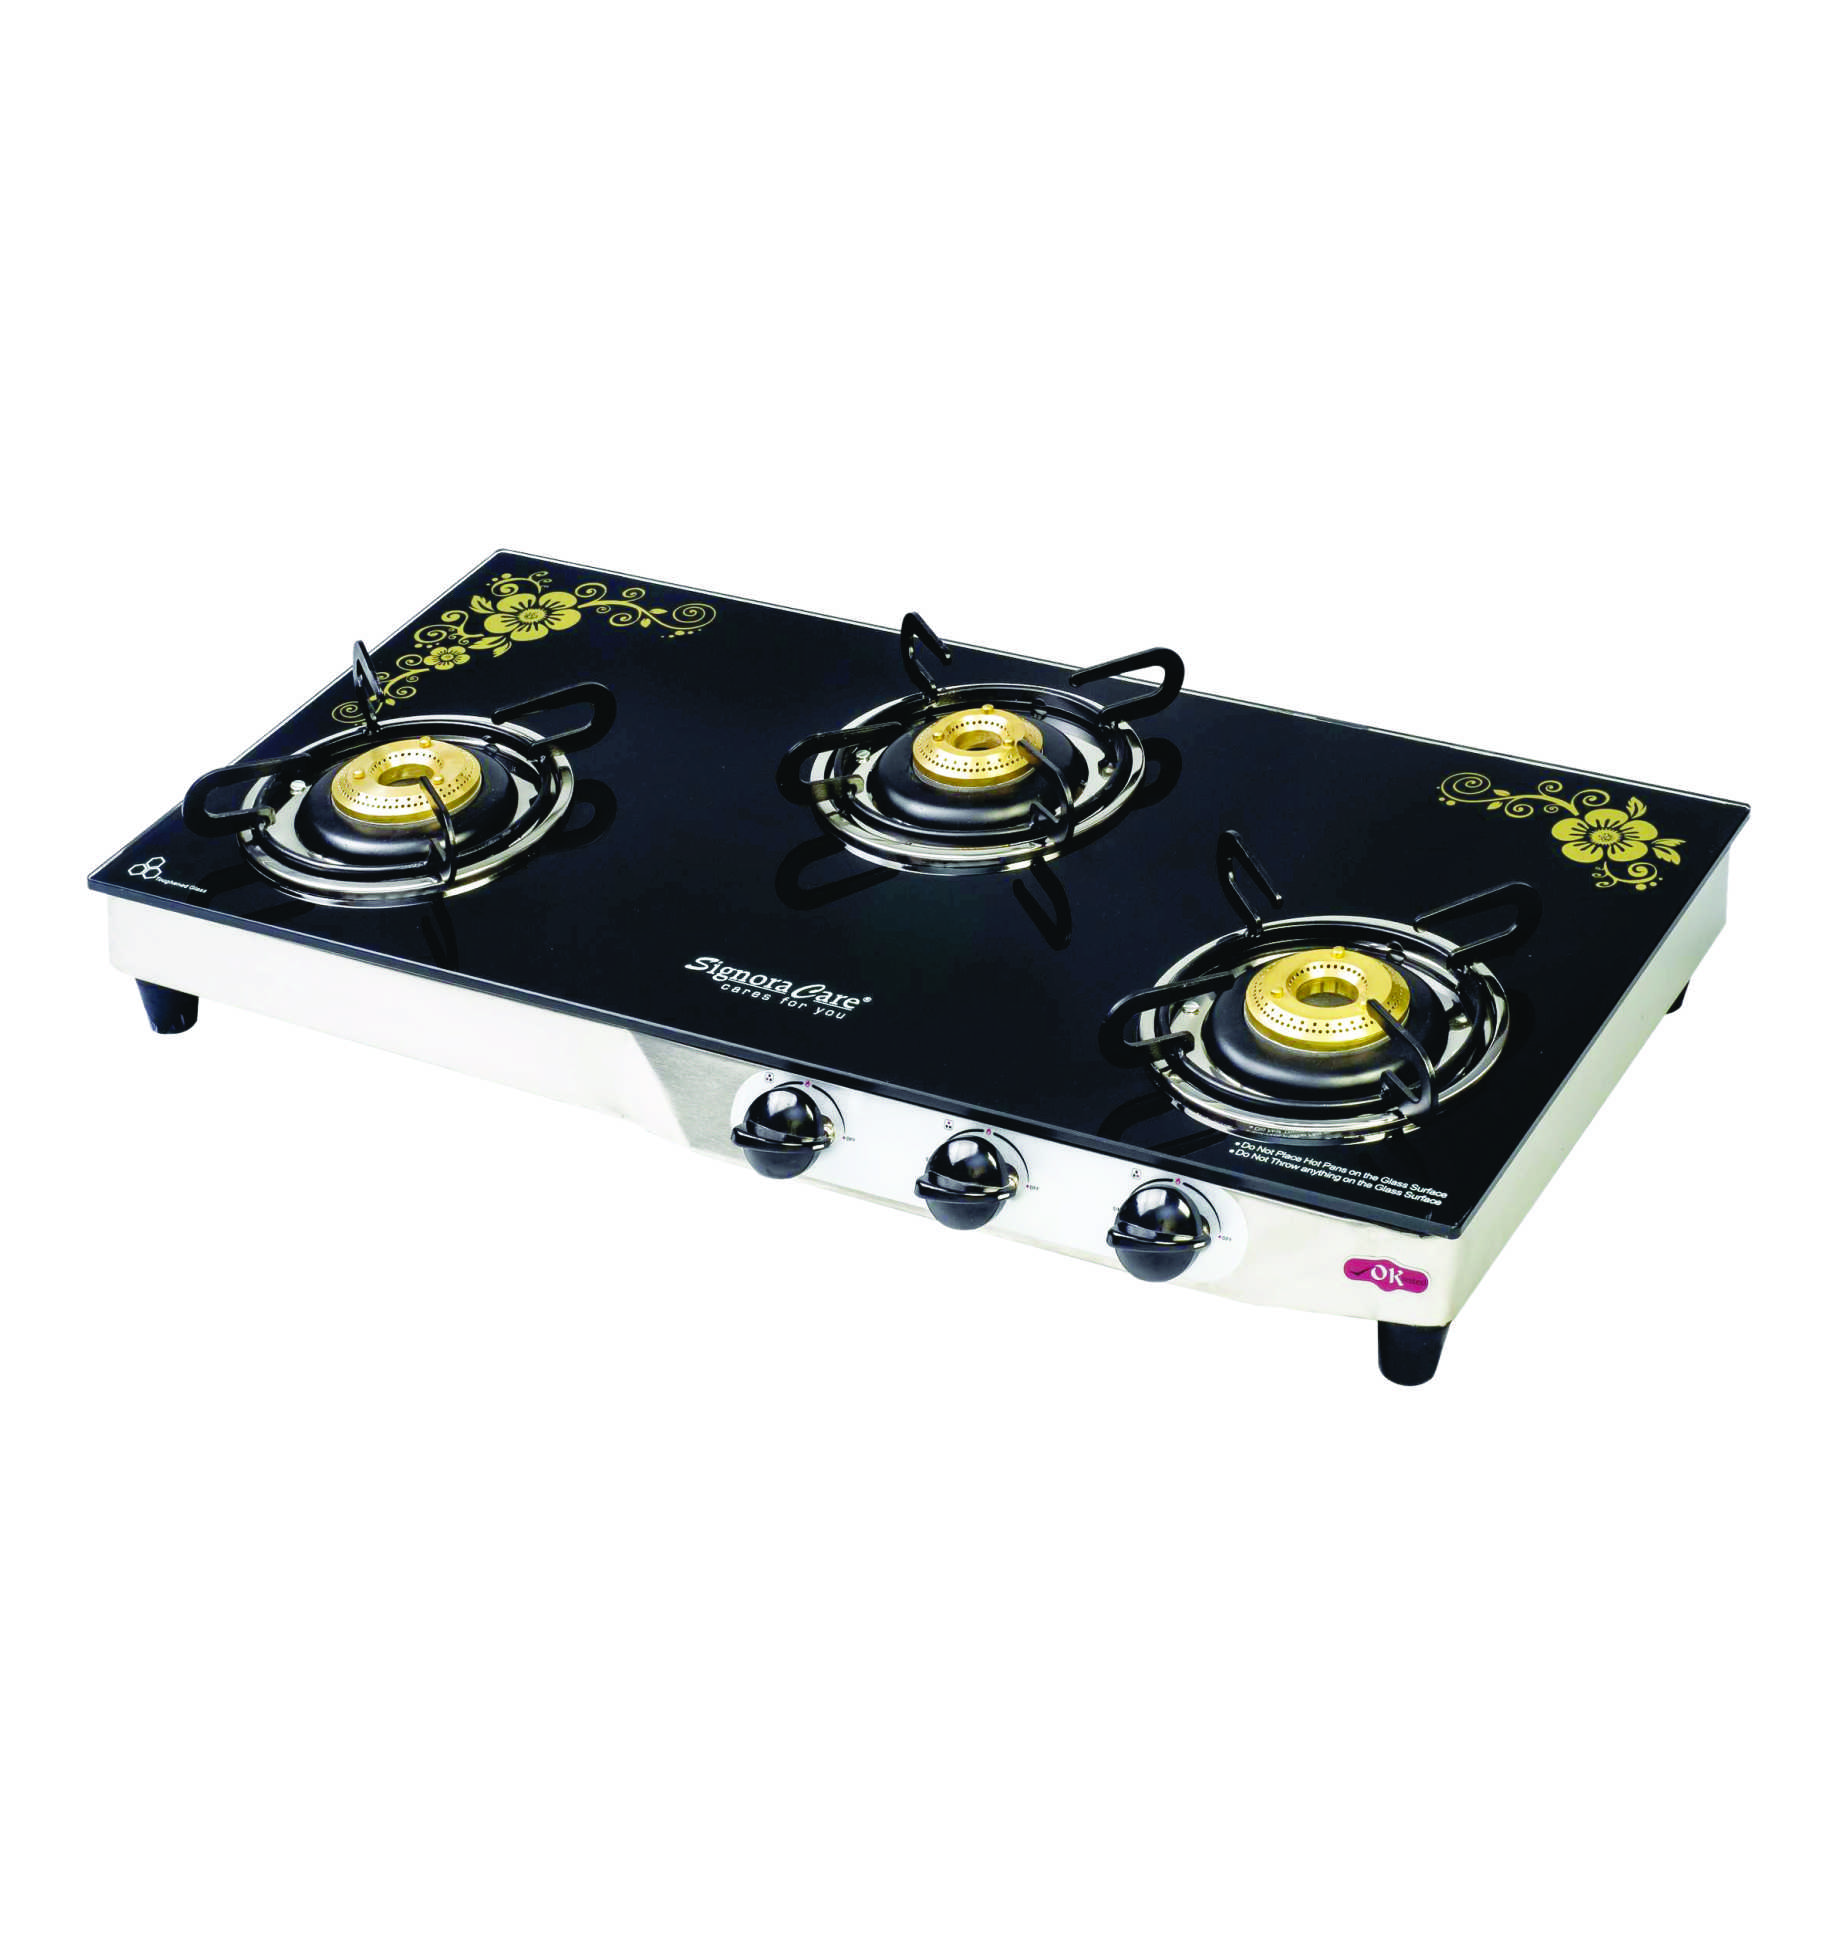 SignoraCare 7 mm(plus) Three Burner Glass top